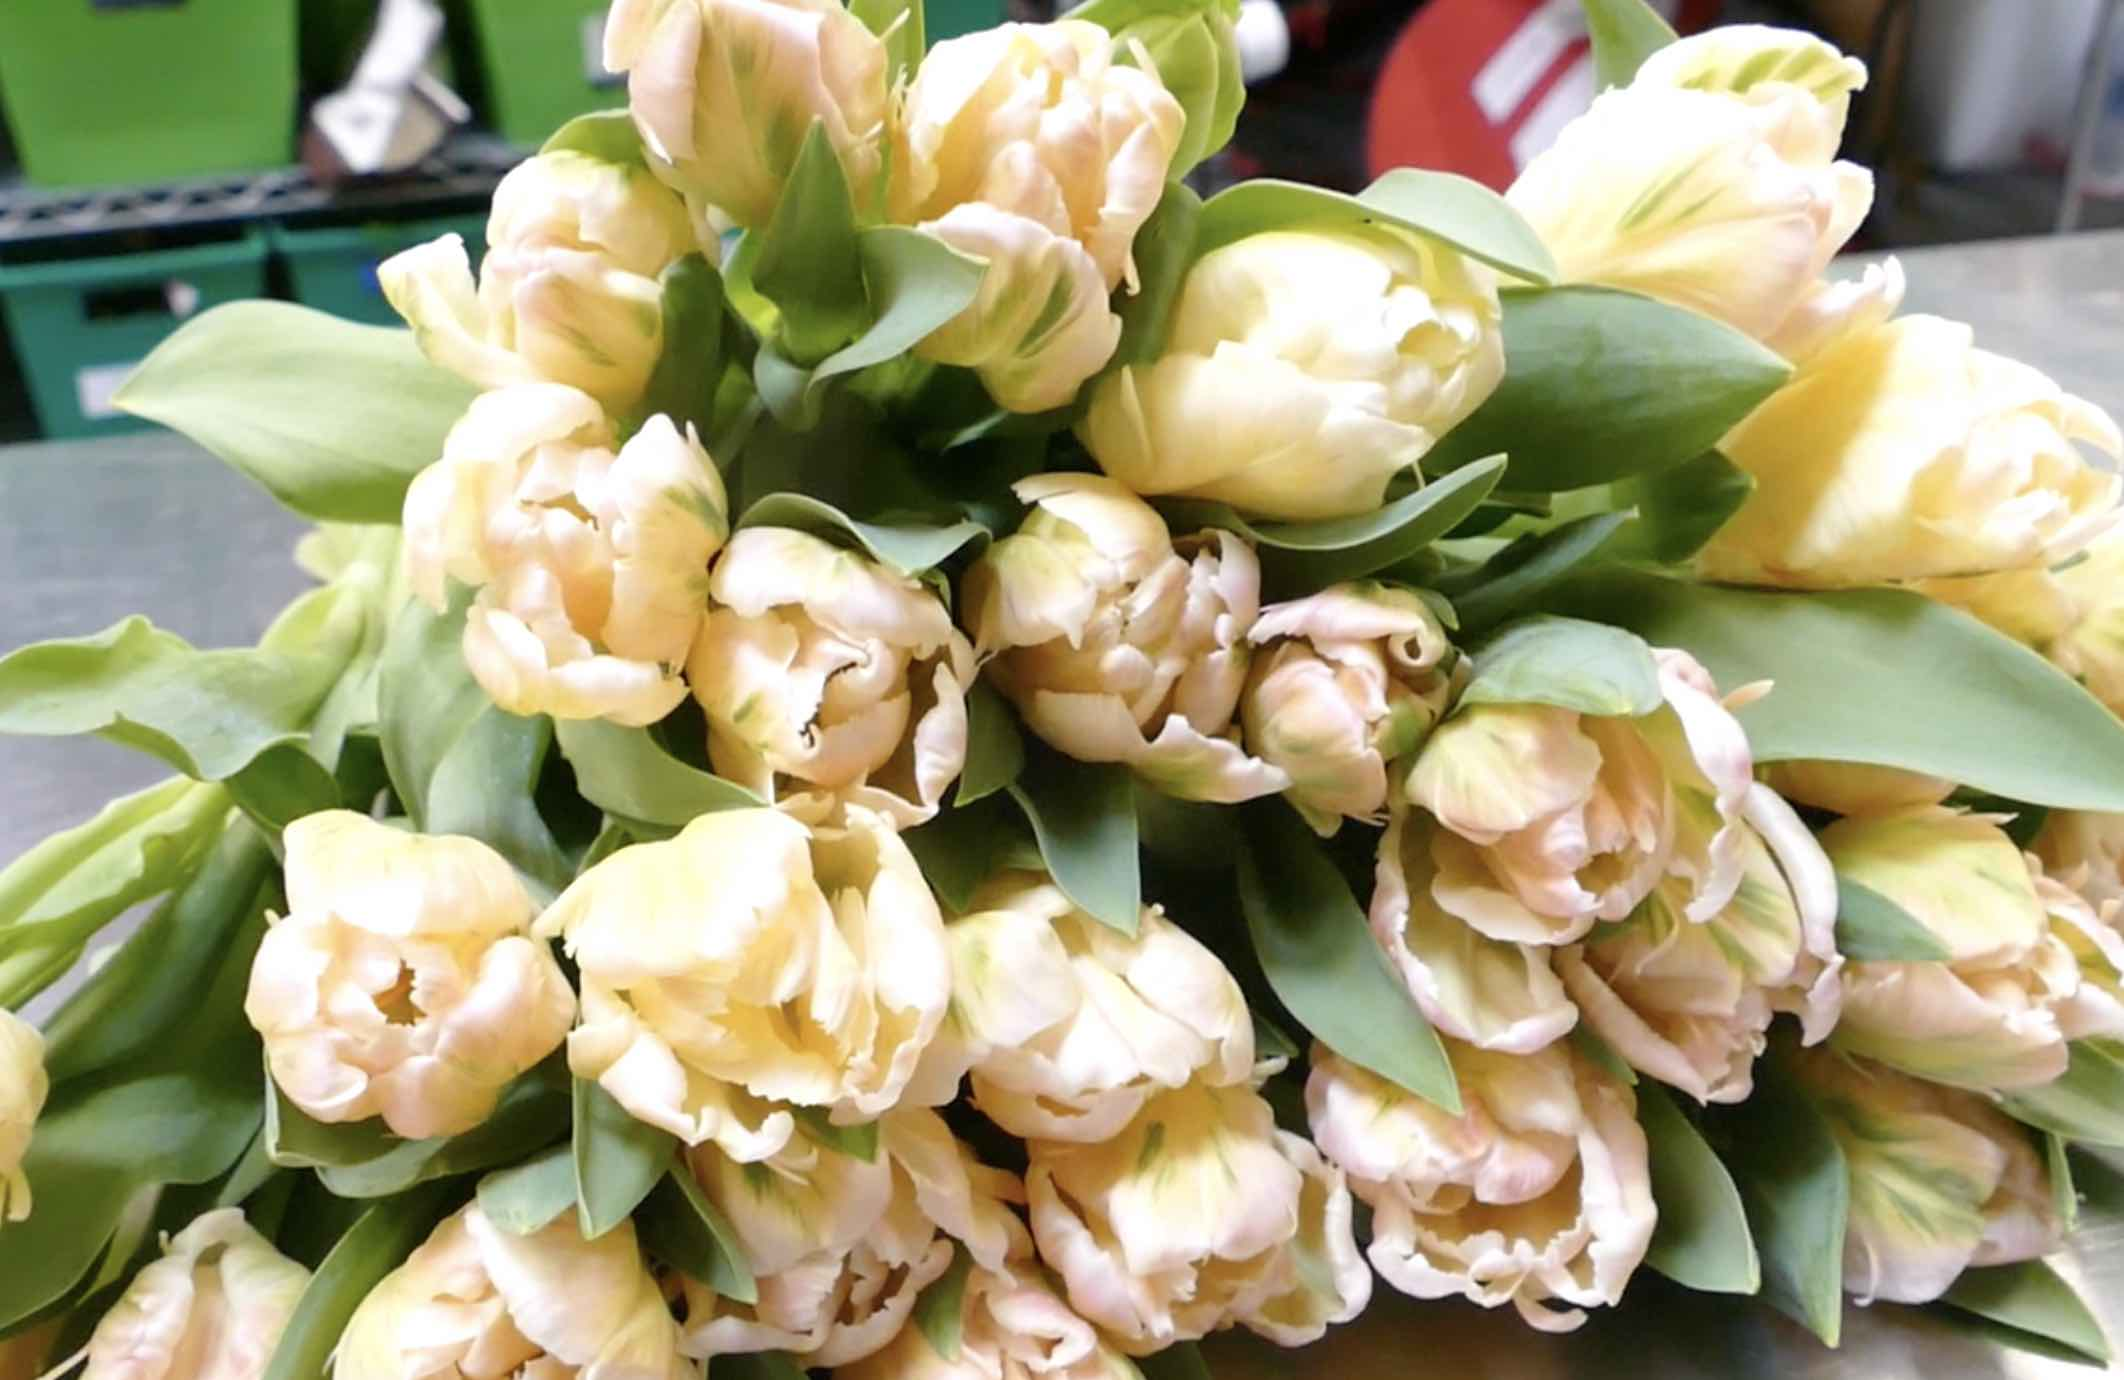 Parrot Tulips are fantastic additions to this week's design.